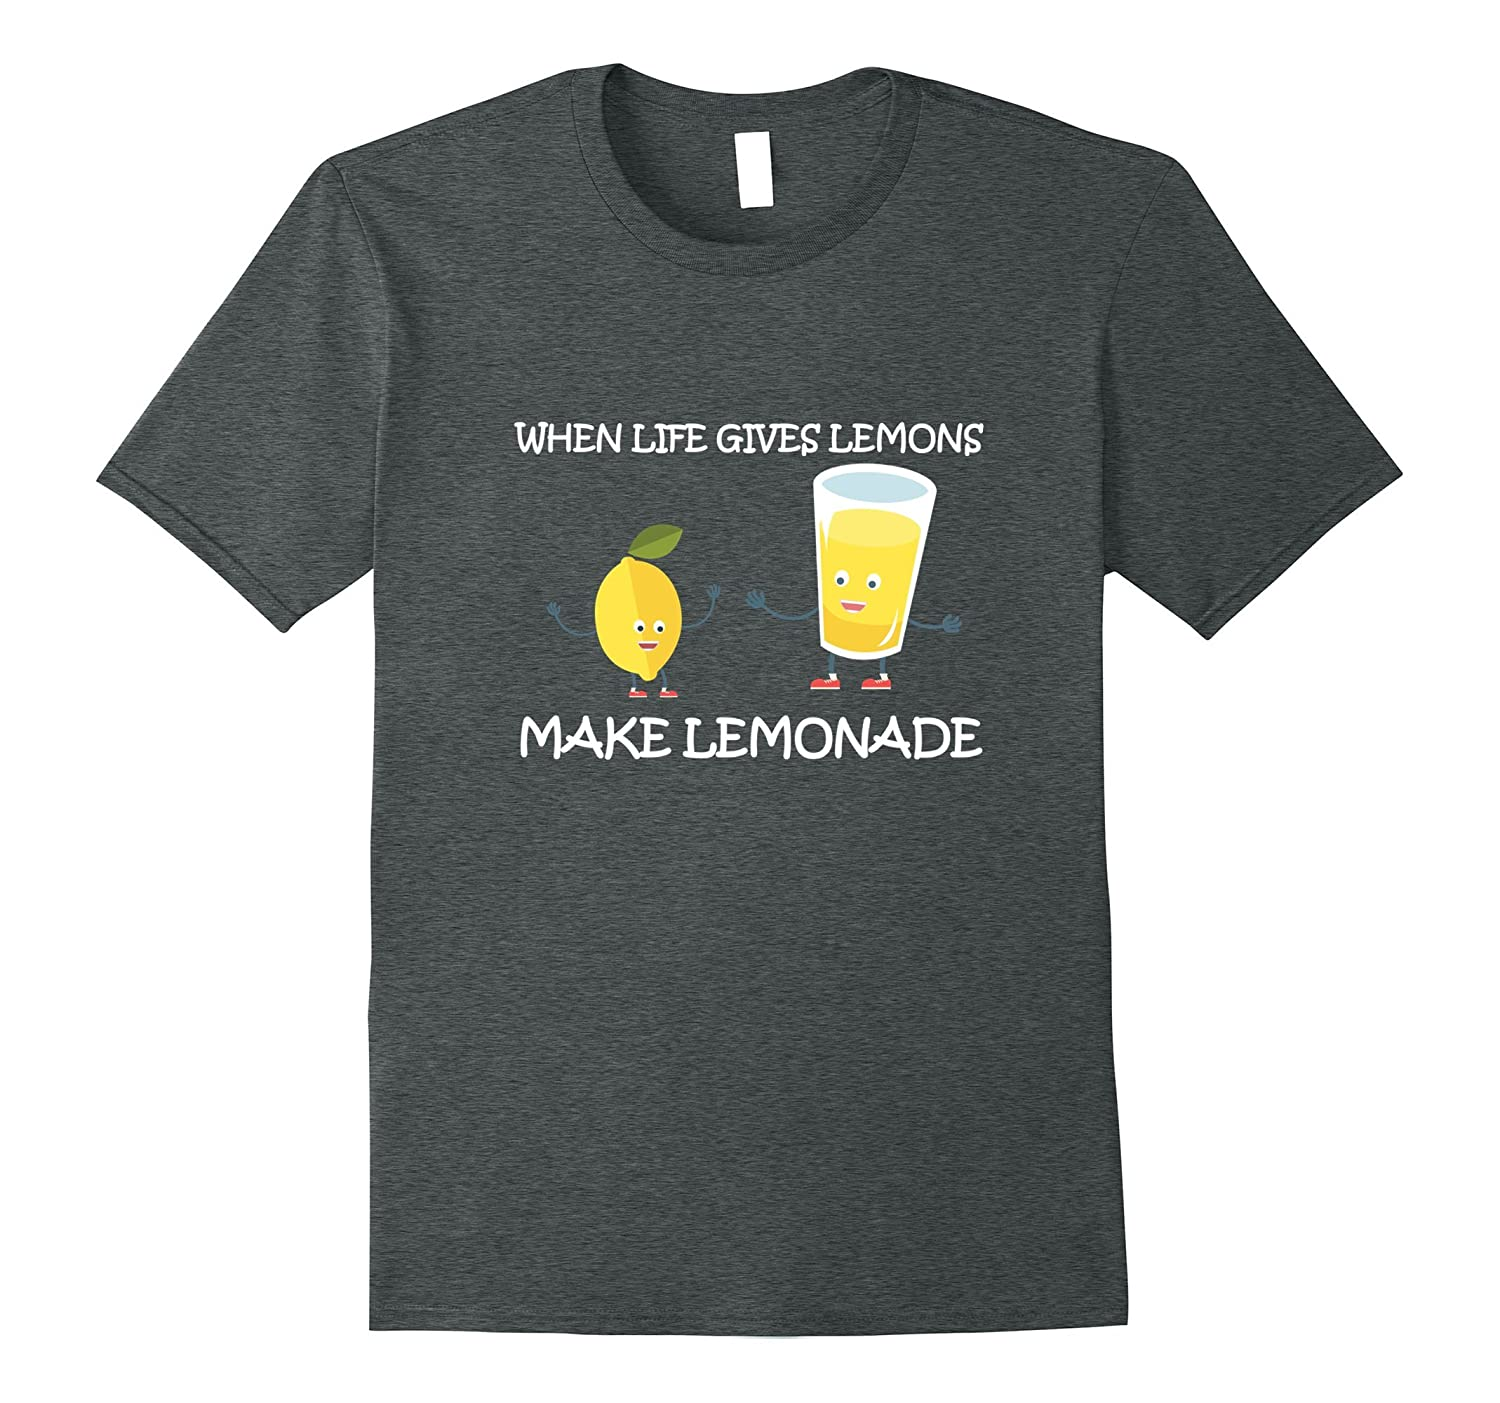 Lemonade Day T-shirt Life Gives Lemons Make Lemonade Kid Tee-Vaci